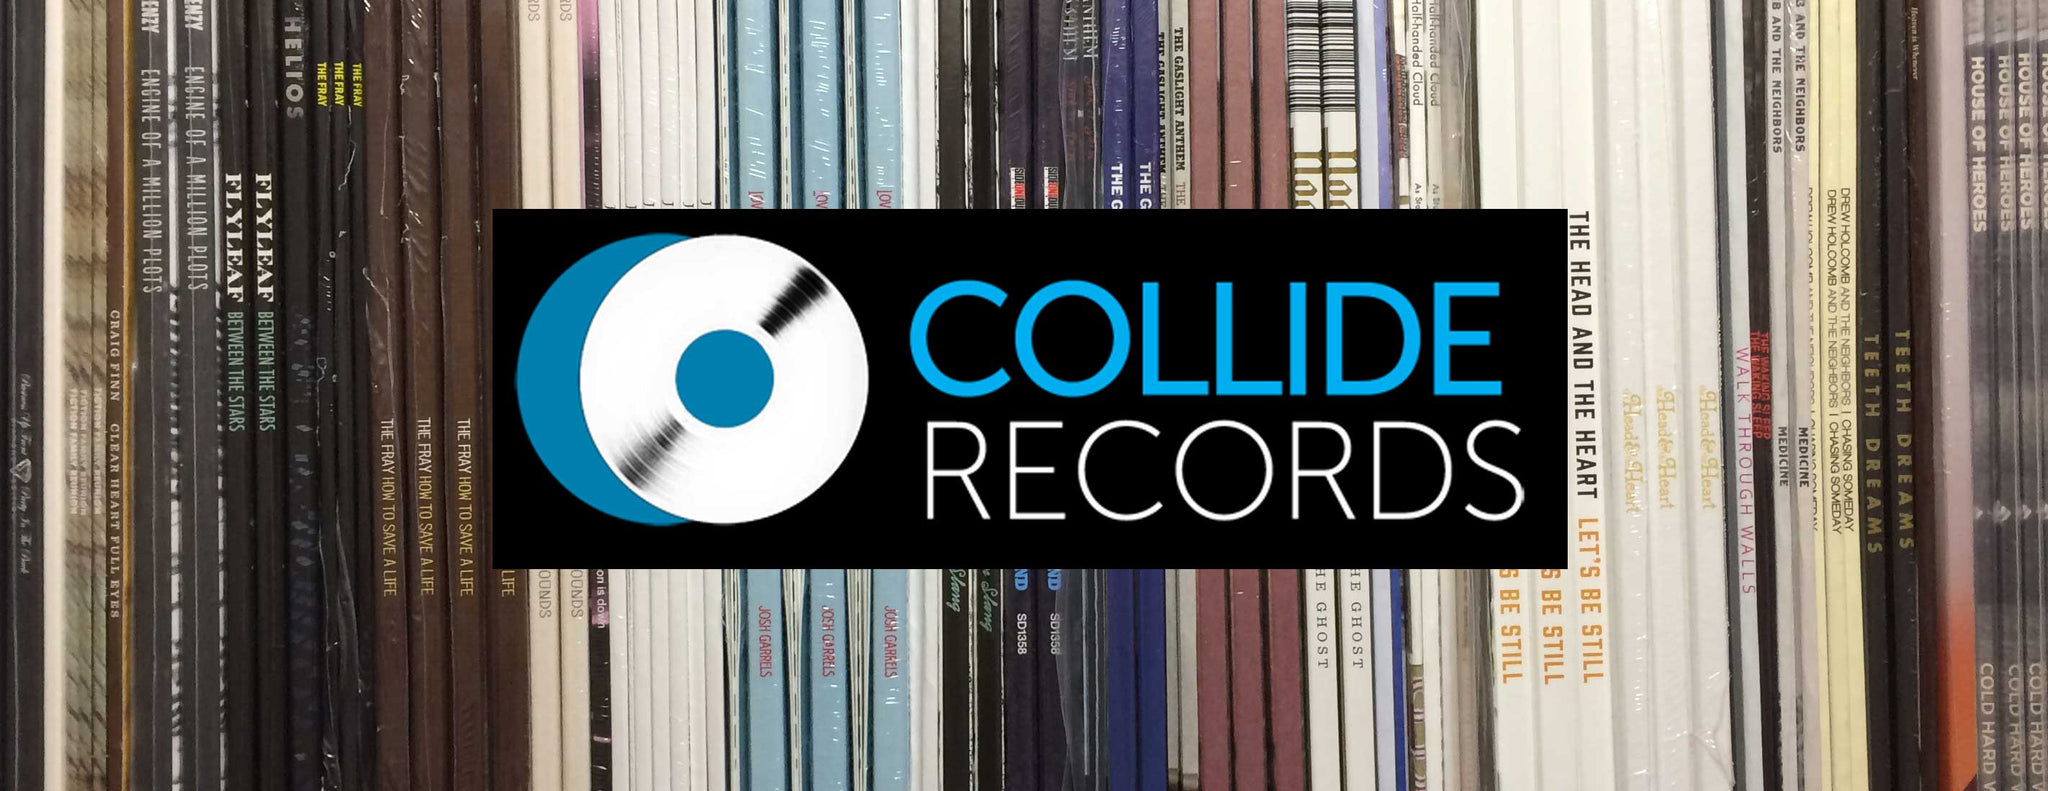 About Collide Records